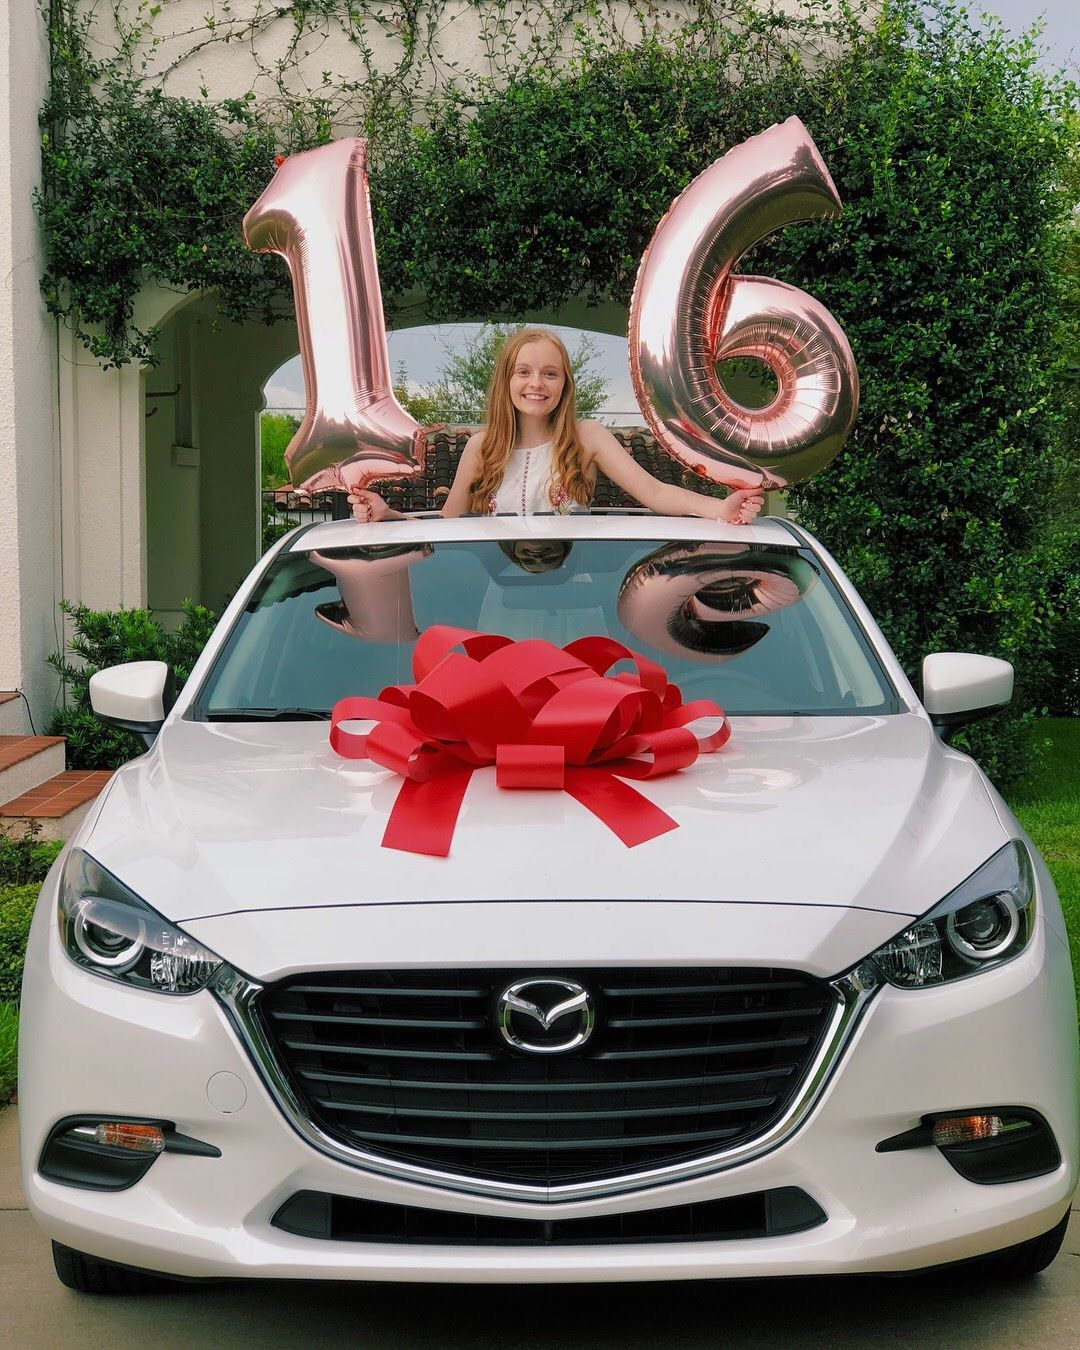 16 Car Photo Sweet 16 Pictures New Car Picture Cute Cars